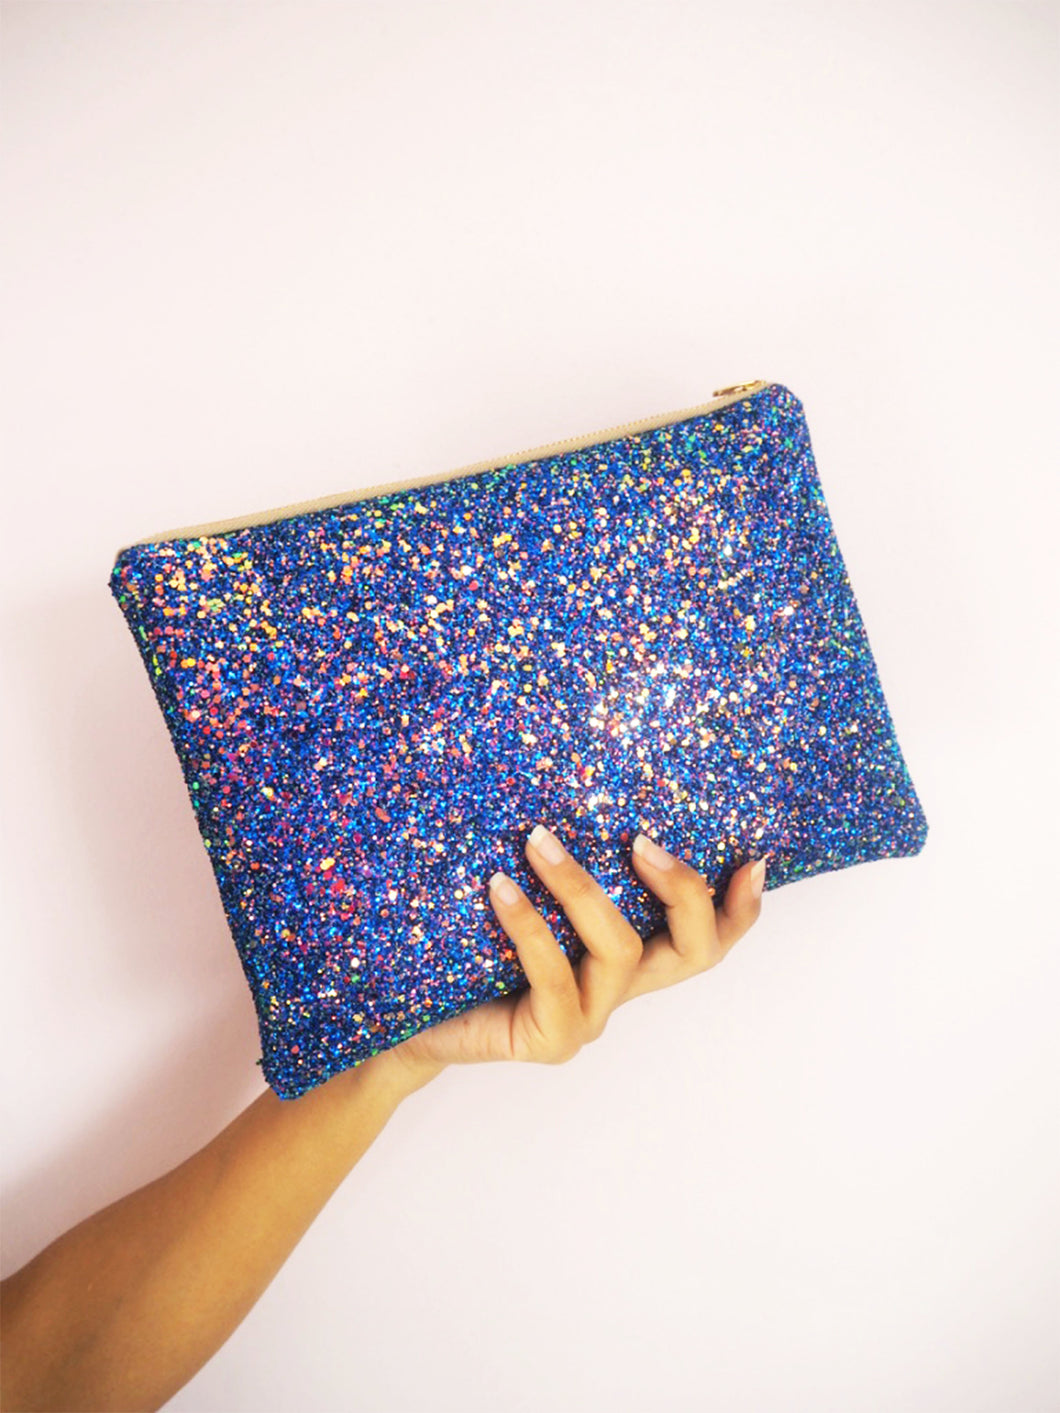 sparkly royal blue clutch bag